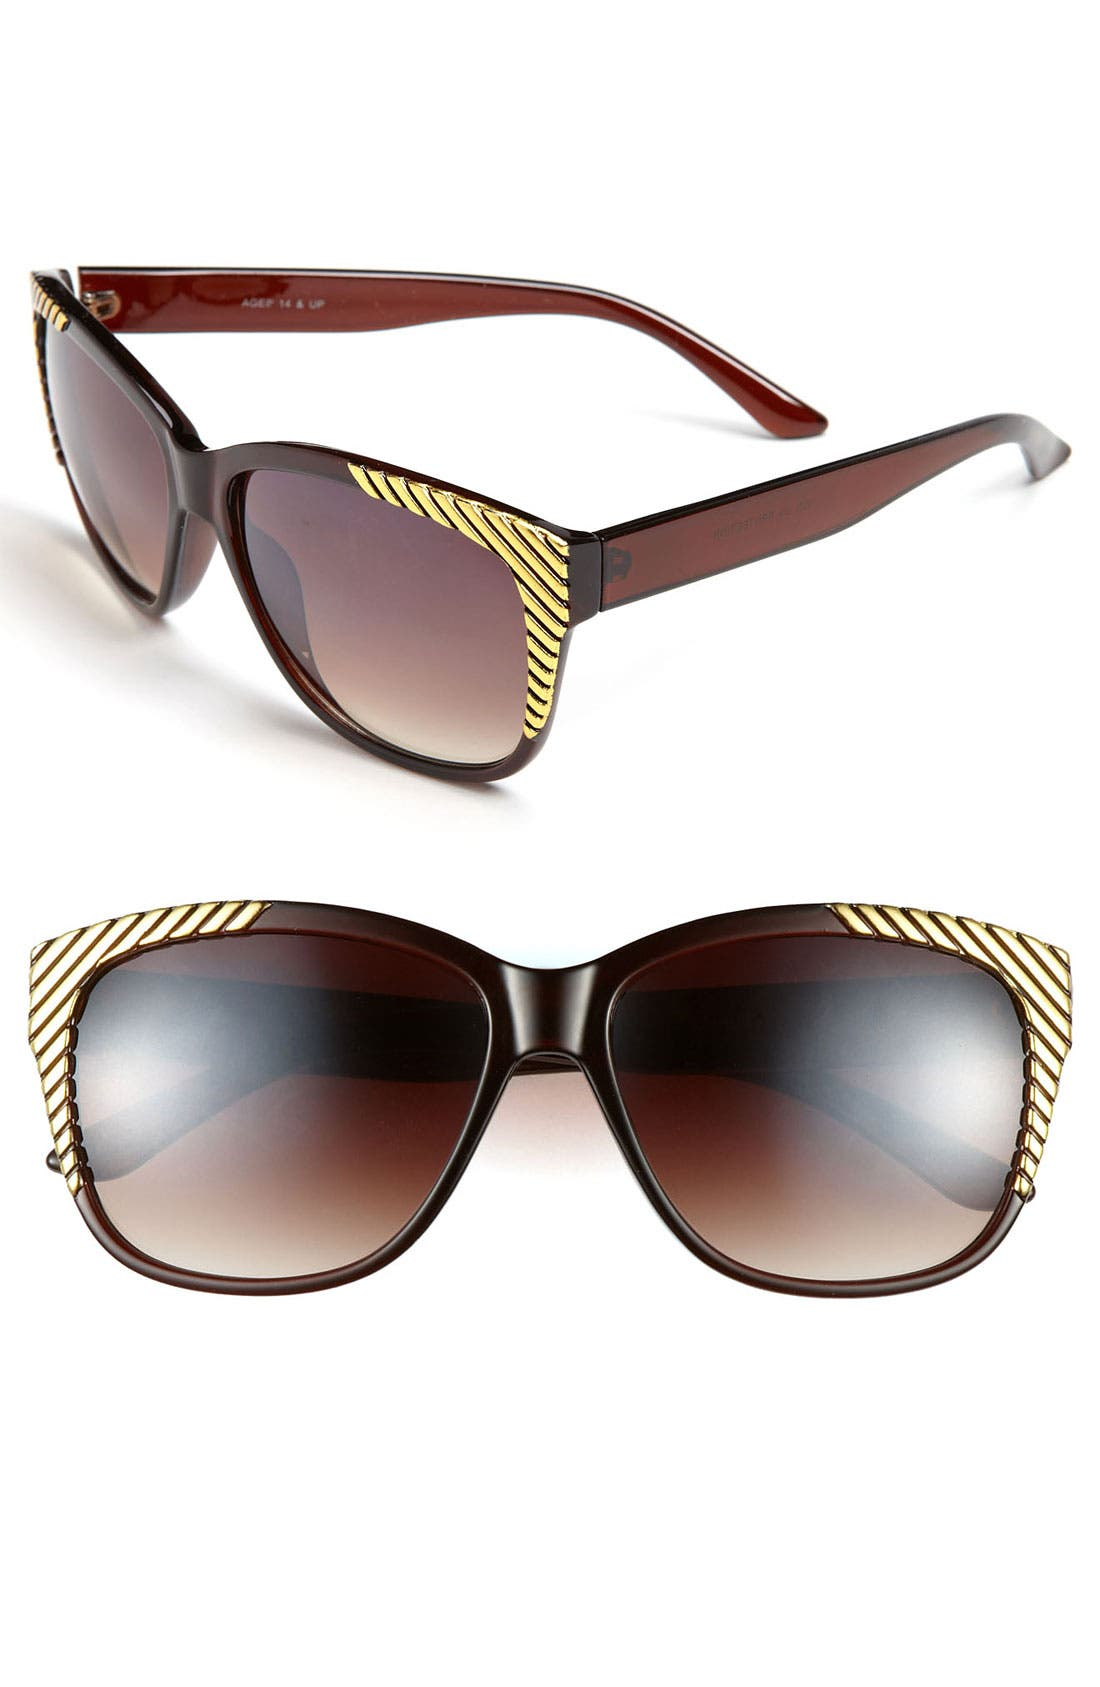 Alternate Image 1 Selected - FE NY Gold Tipped Sunglasses